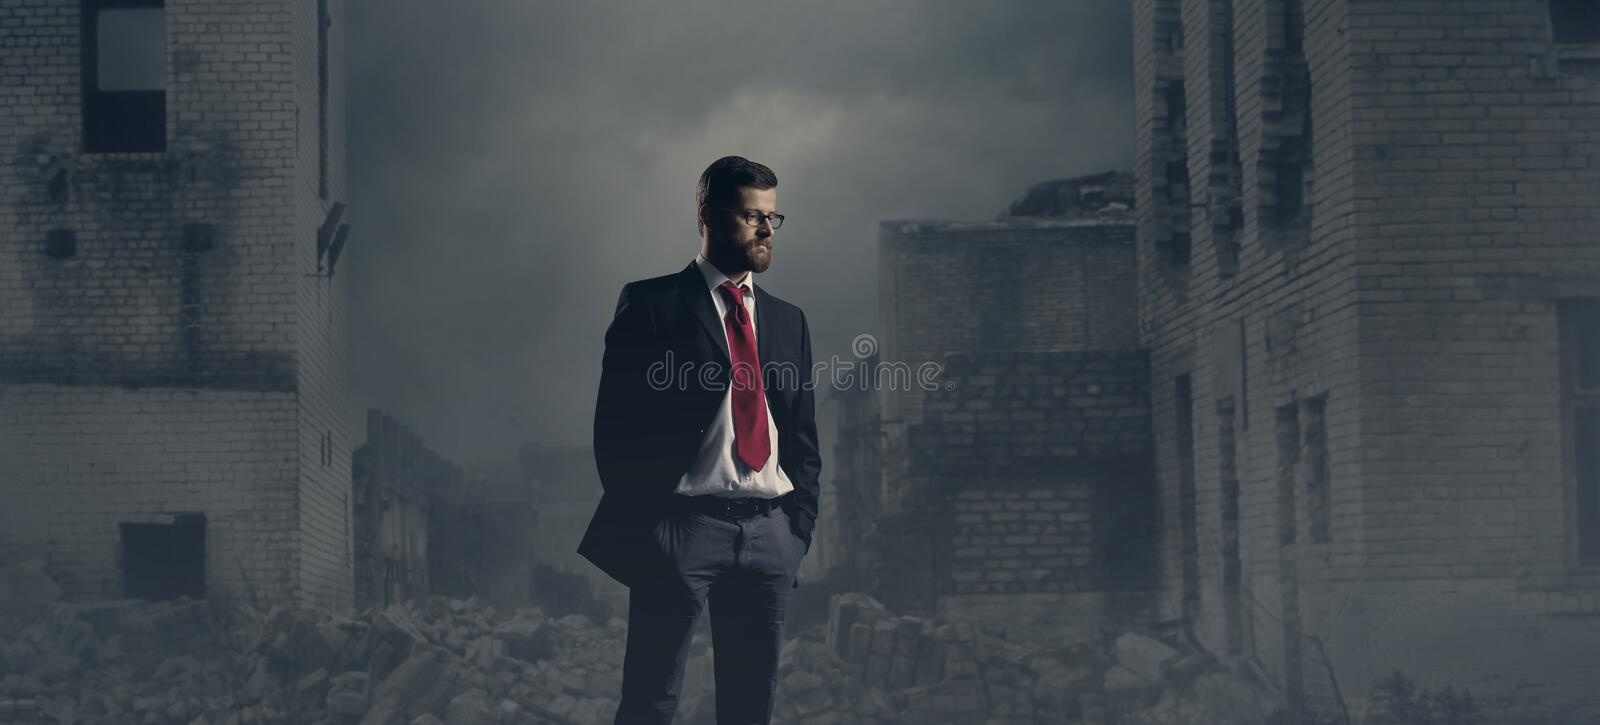 Businessman standing over apocalyptic background. Crisis, default, setback concept. stock photography